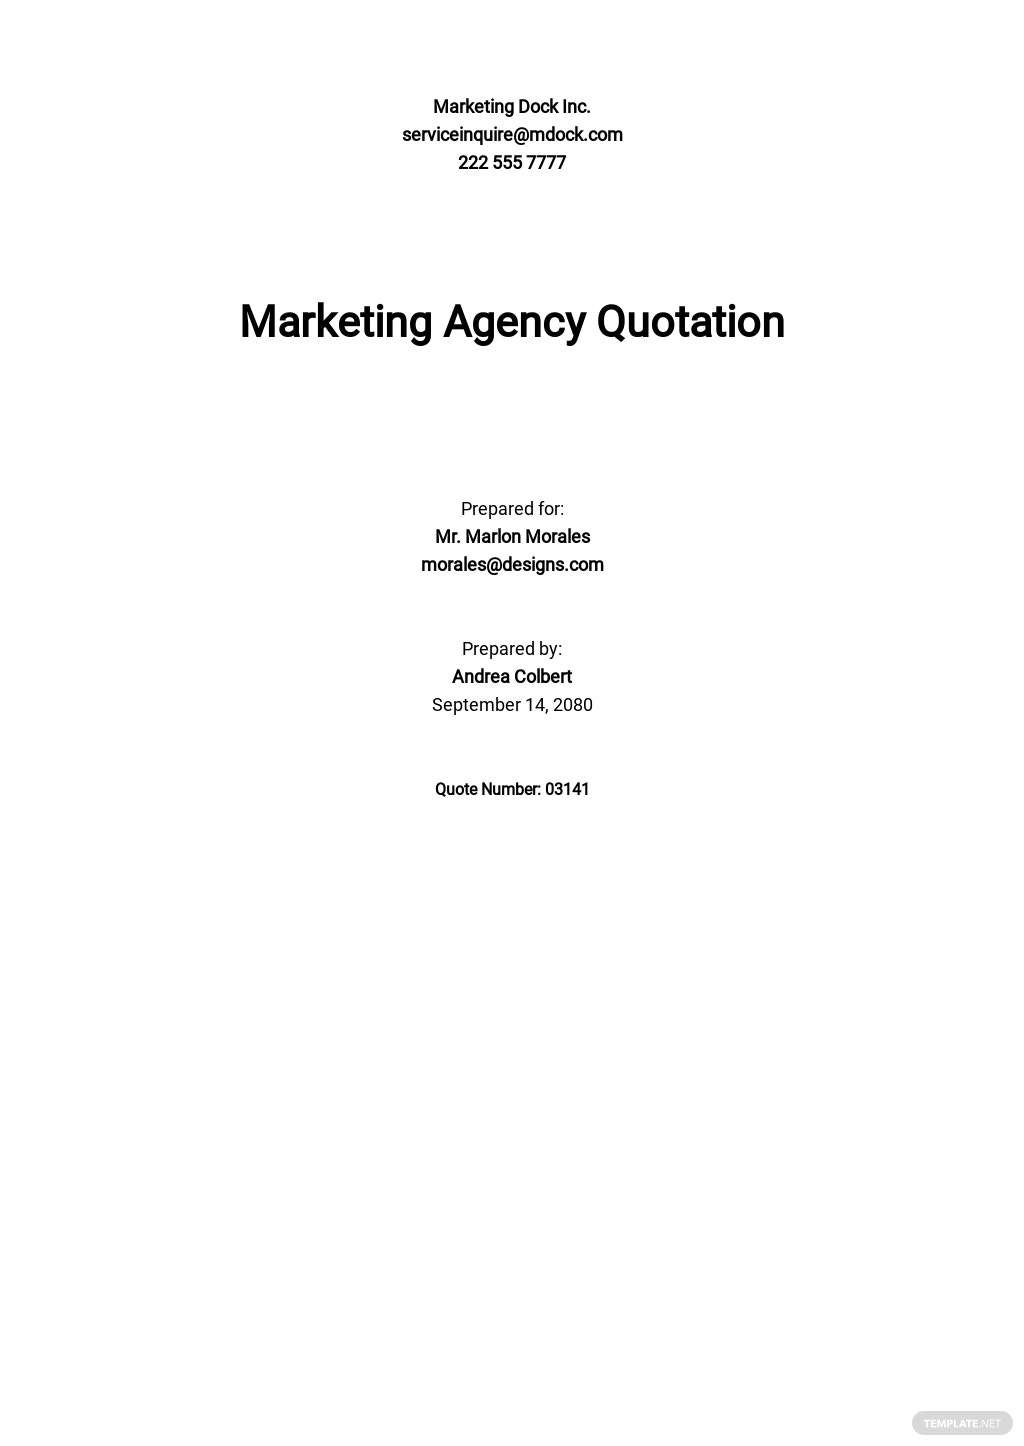 Marketing Agency Quotation Template